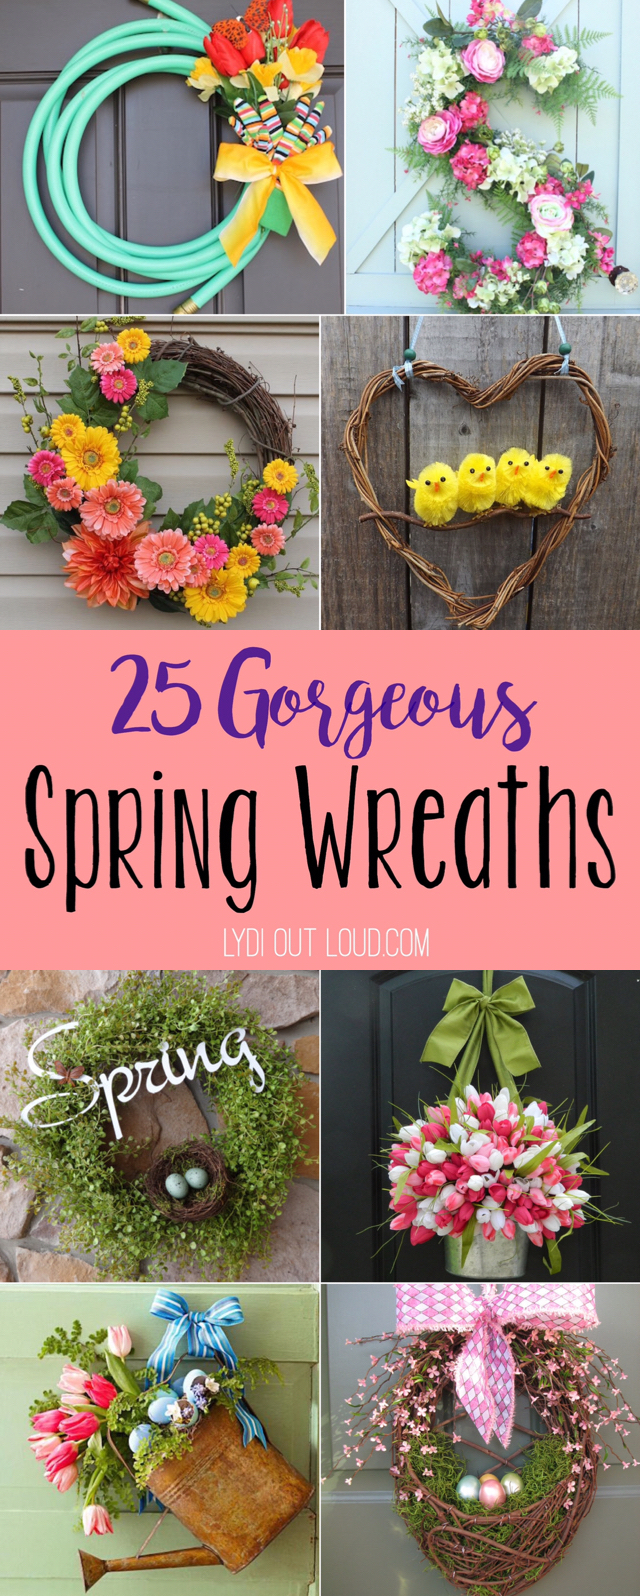 Beautiful spring wreaths and door hangers! via @lydioutloud